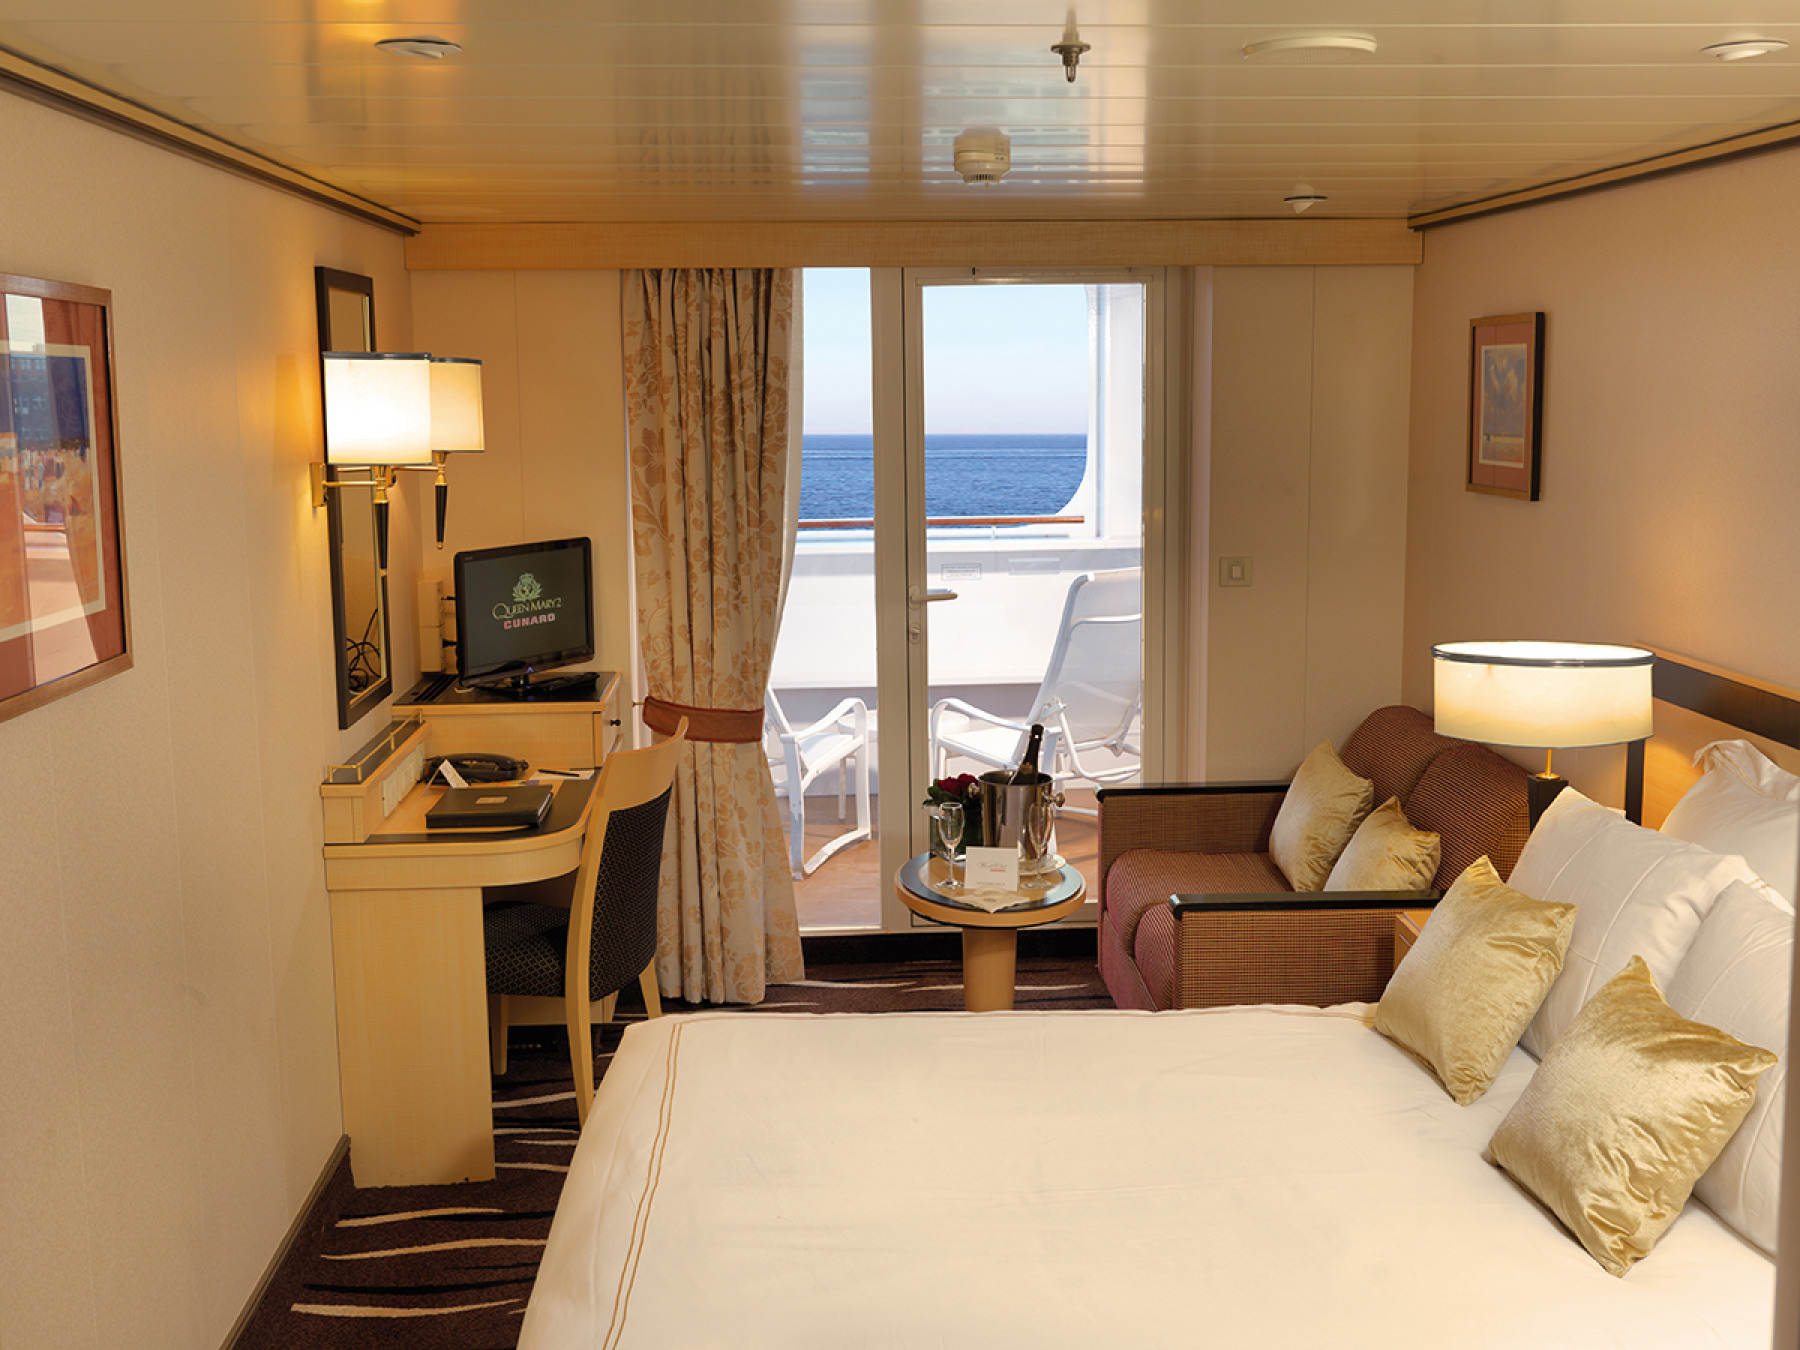 cunard queen mary 2 b1 premium balcony.JPG